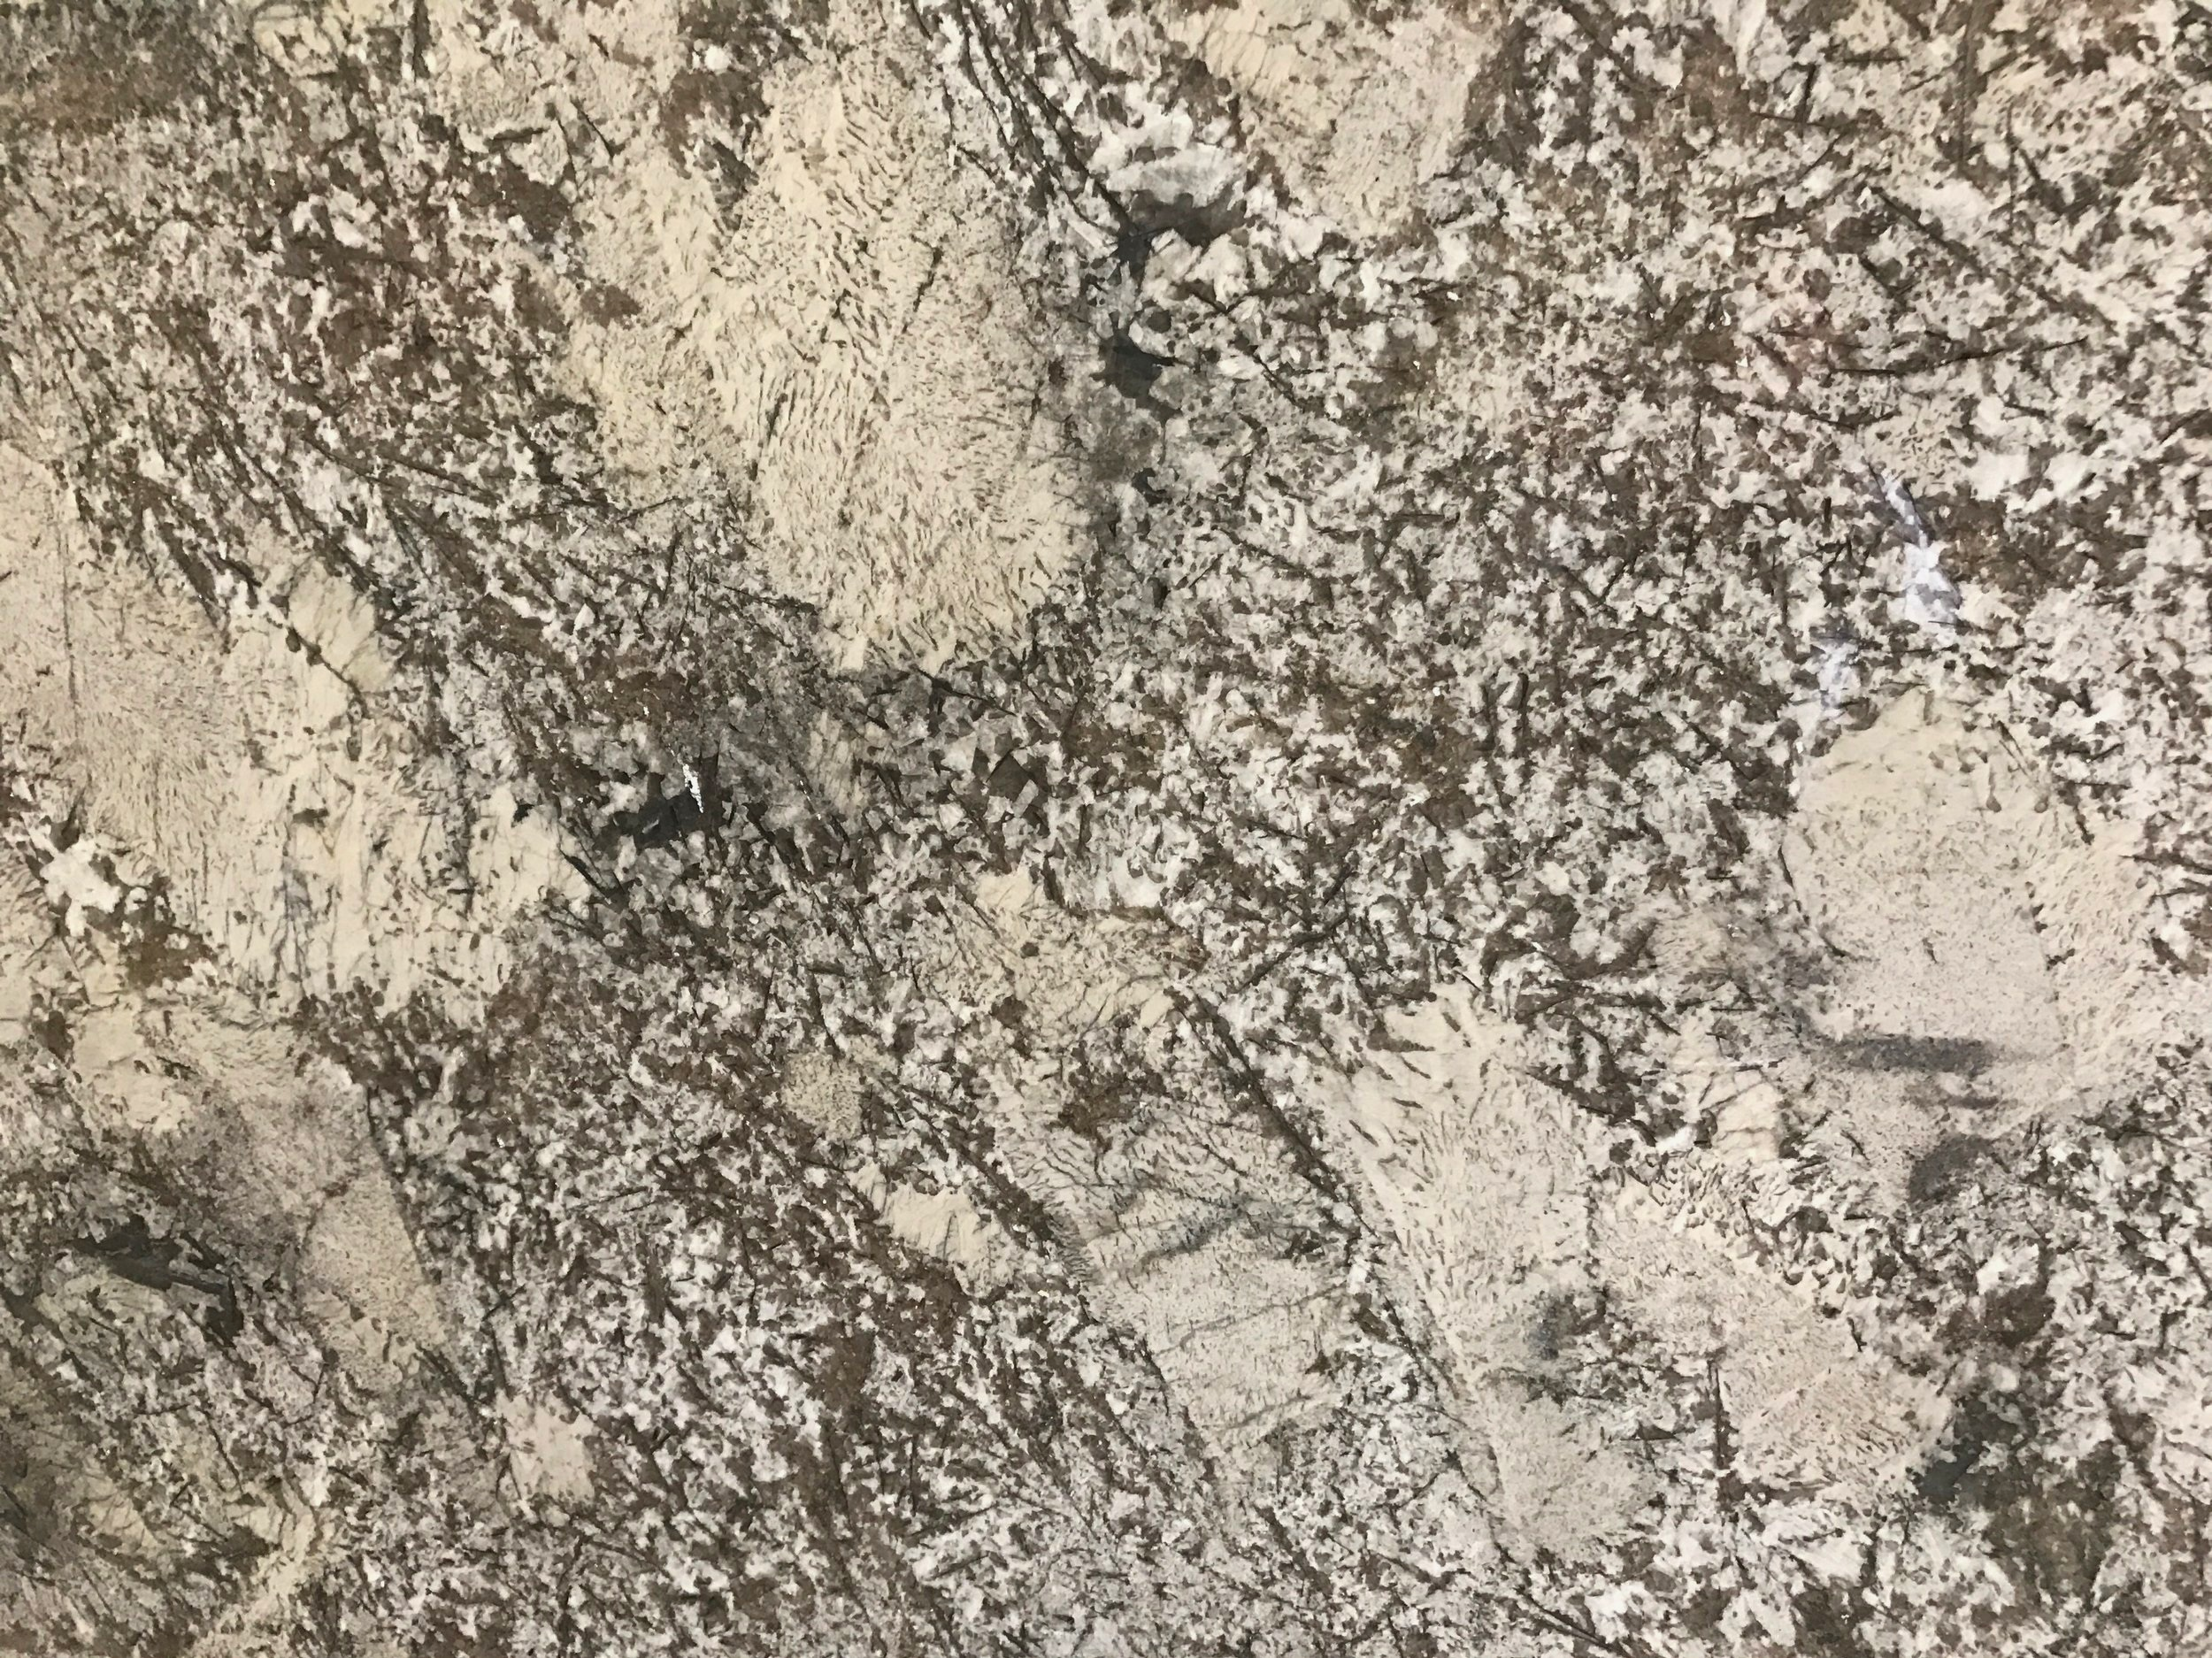 Pergaminho - Quarried: BrazilMaterial Type: GraniteDescription: light grey base color with tans, browns, and creams with silver specks throughout.Other Name(s): Crema Typhoon